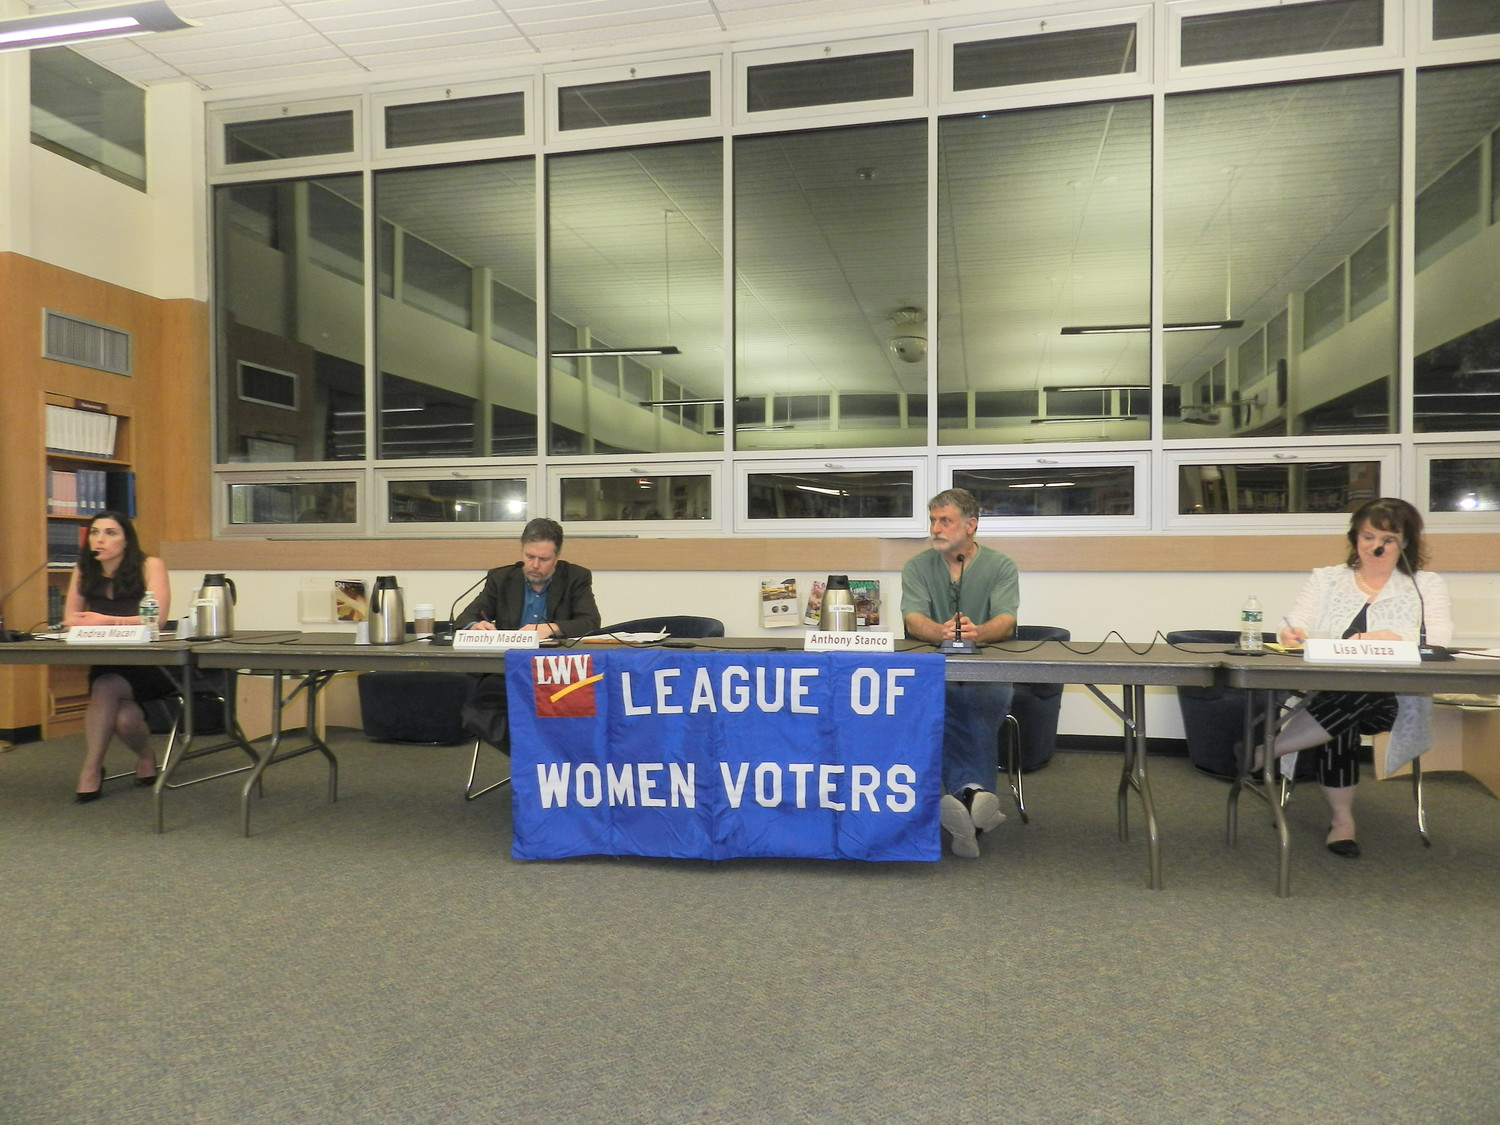 Candidates for Board of Education trustee took questions from the audience at Meet the Candidates Night on May 2, a forum coordinated by the North Shore Coordinating Council of Parent Associations and the League of Women Voters.